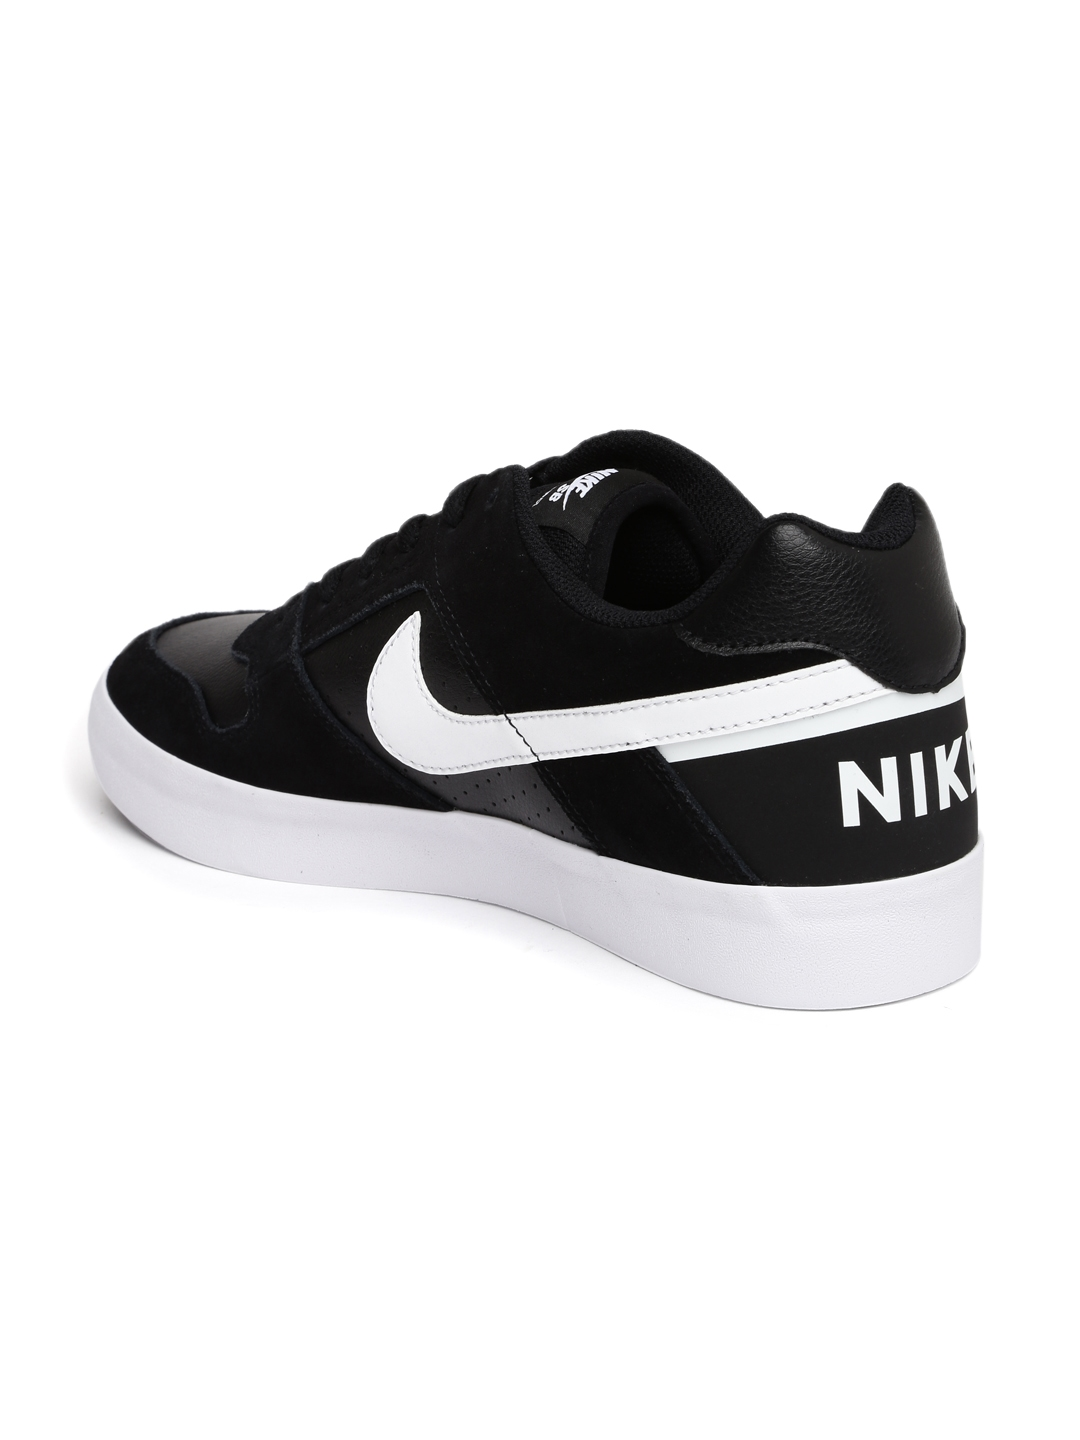 buy popular 37cce adfe0 Nike Men Black Delta Force Skate Shoes